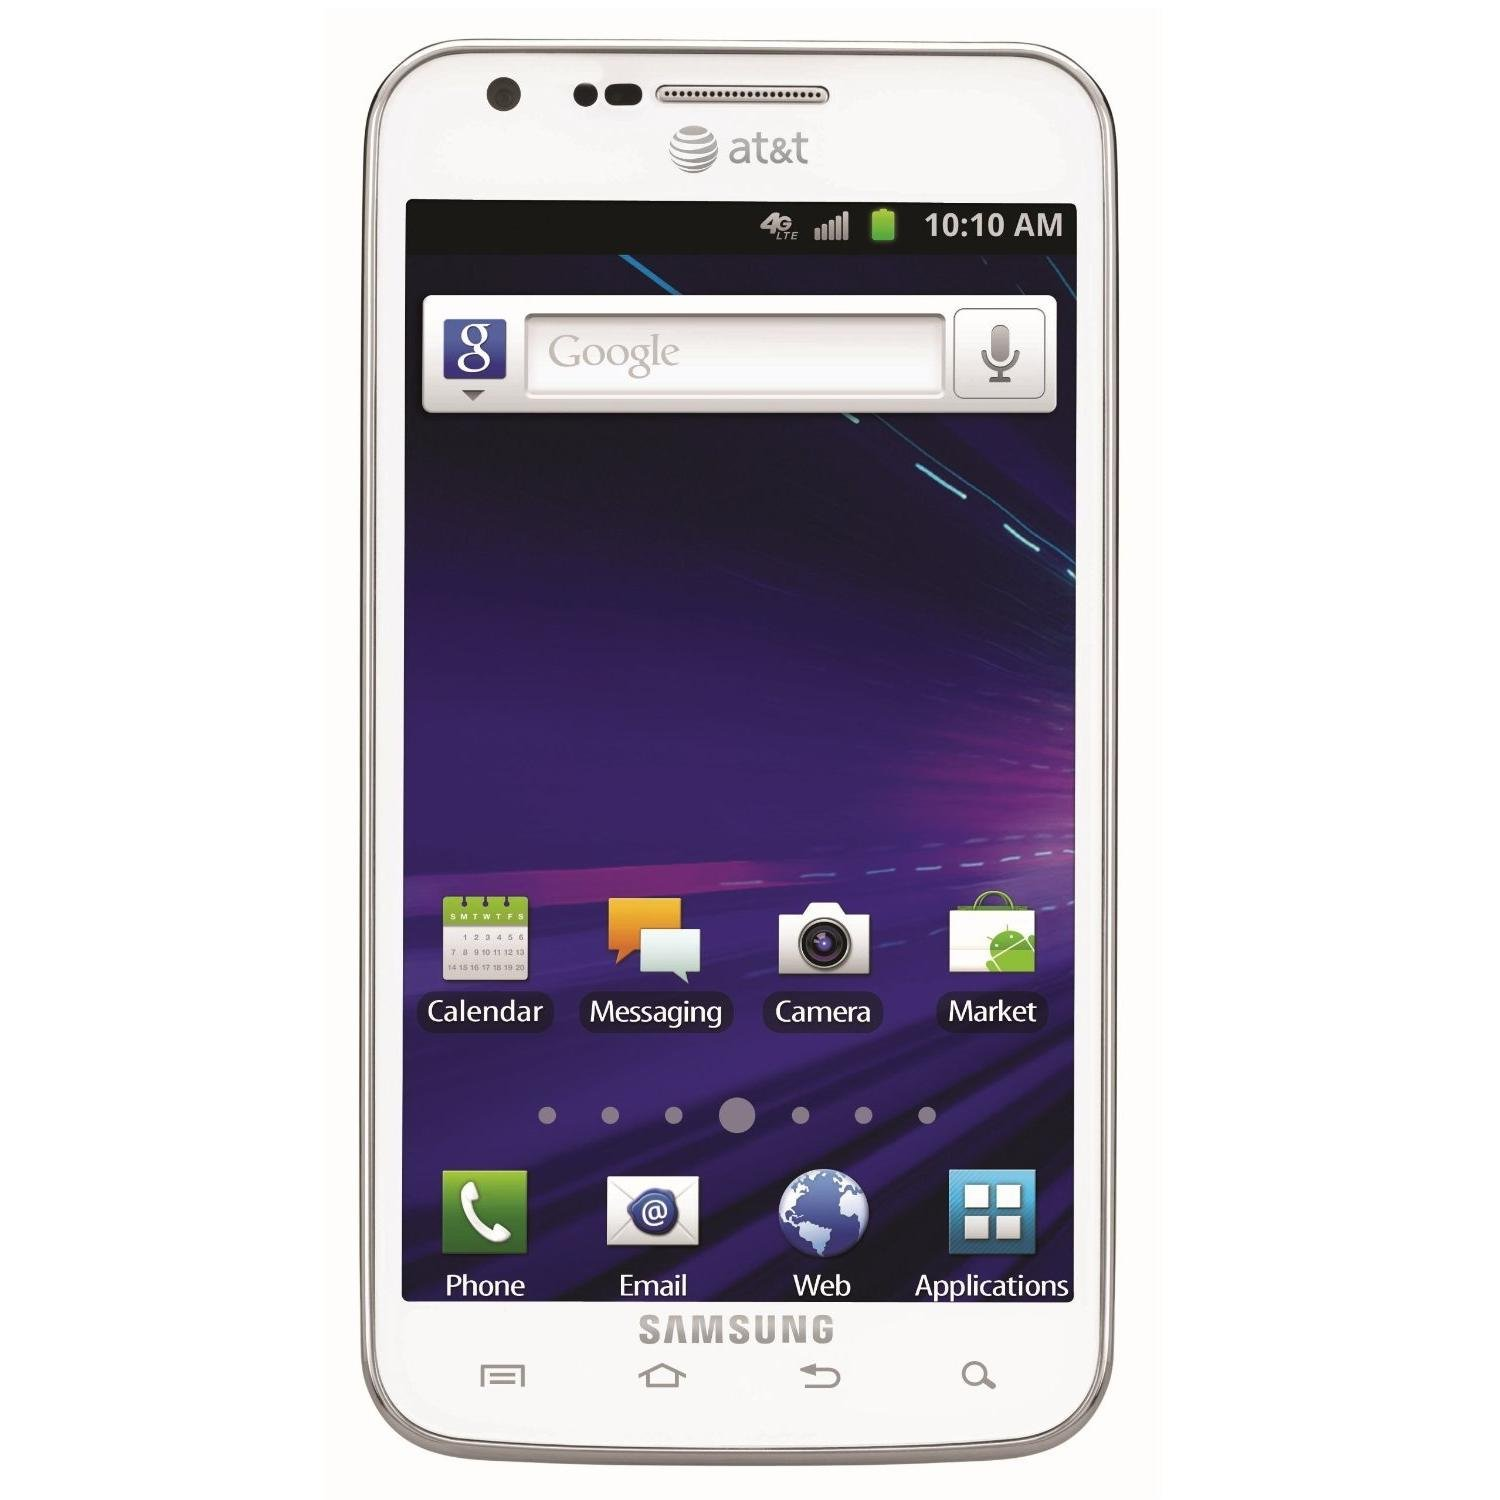 Samsung Galaxy S2 S II Skyrocket 16GB White AT&T Cellphone ...